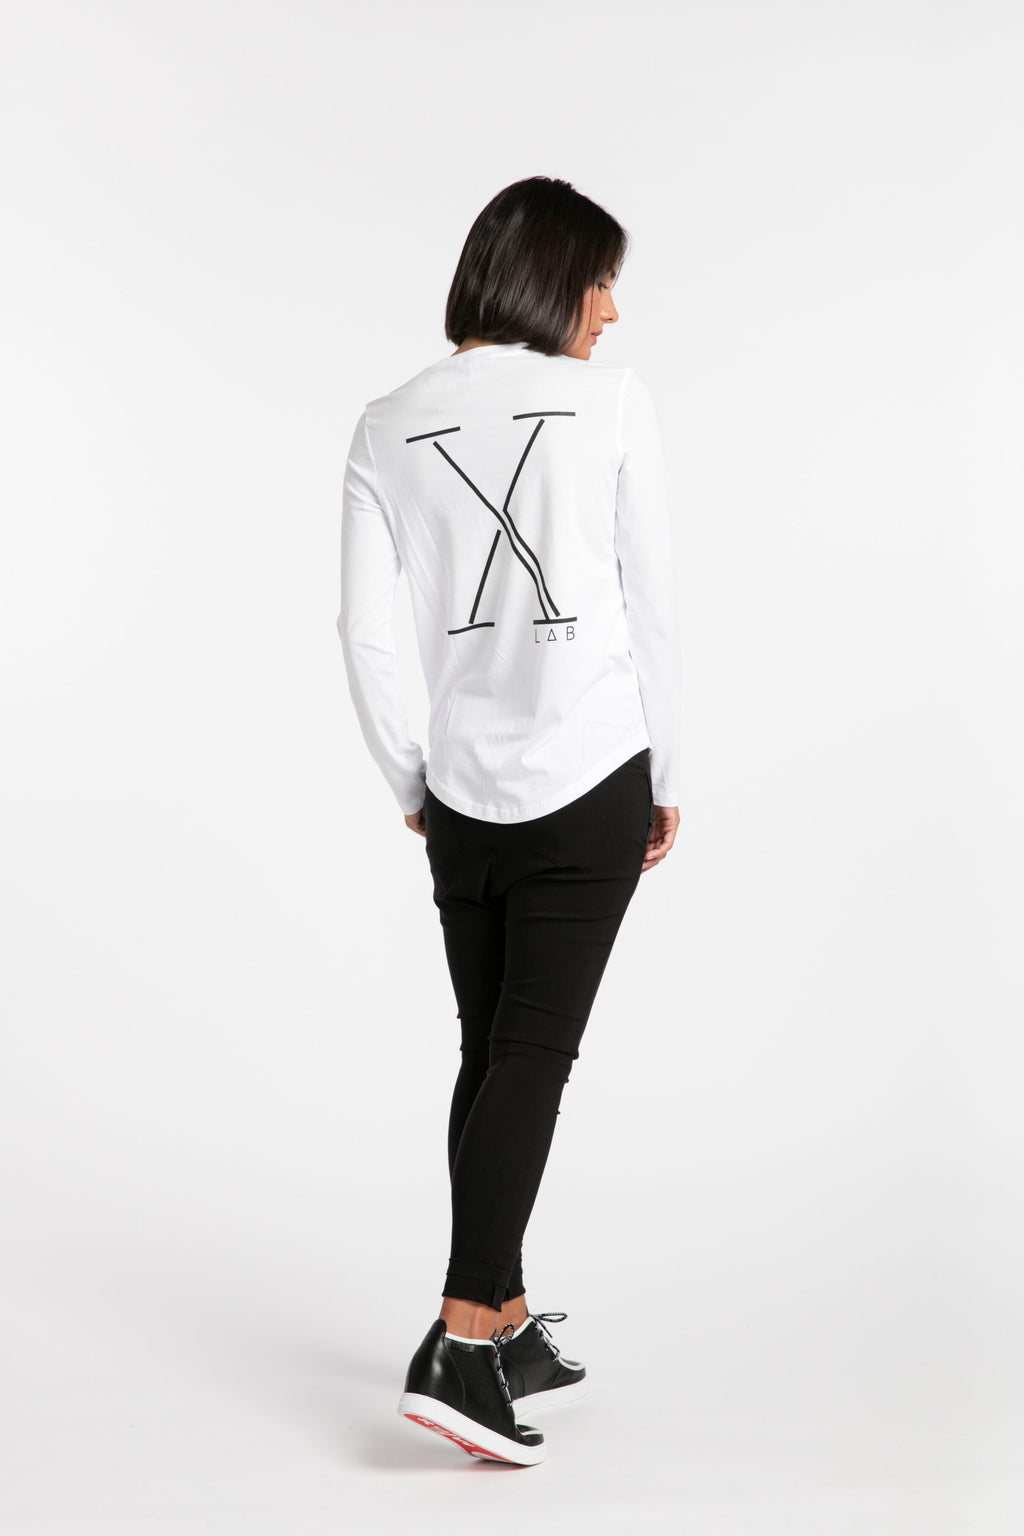 STYLEXLAB X Limited Edition Tee 224 White/Black